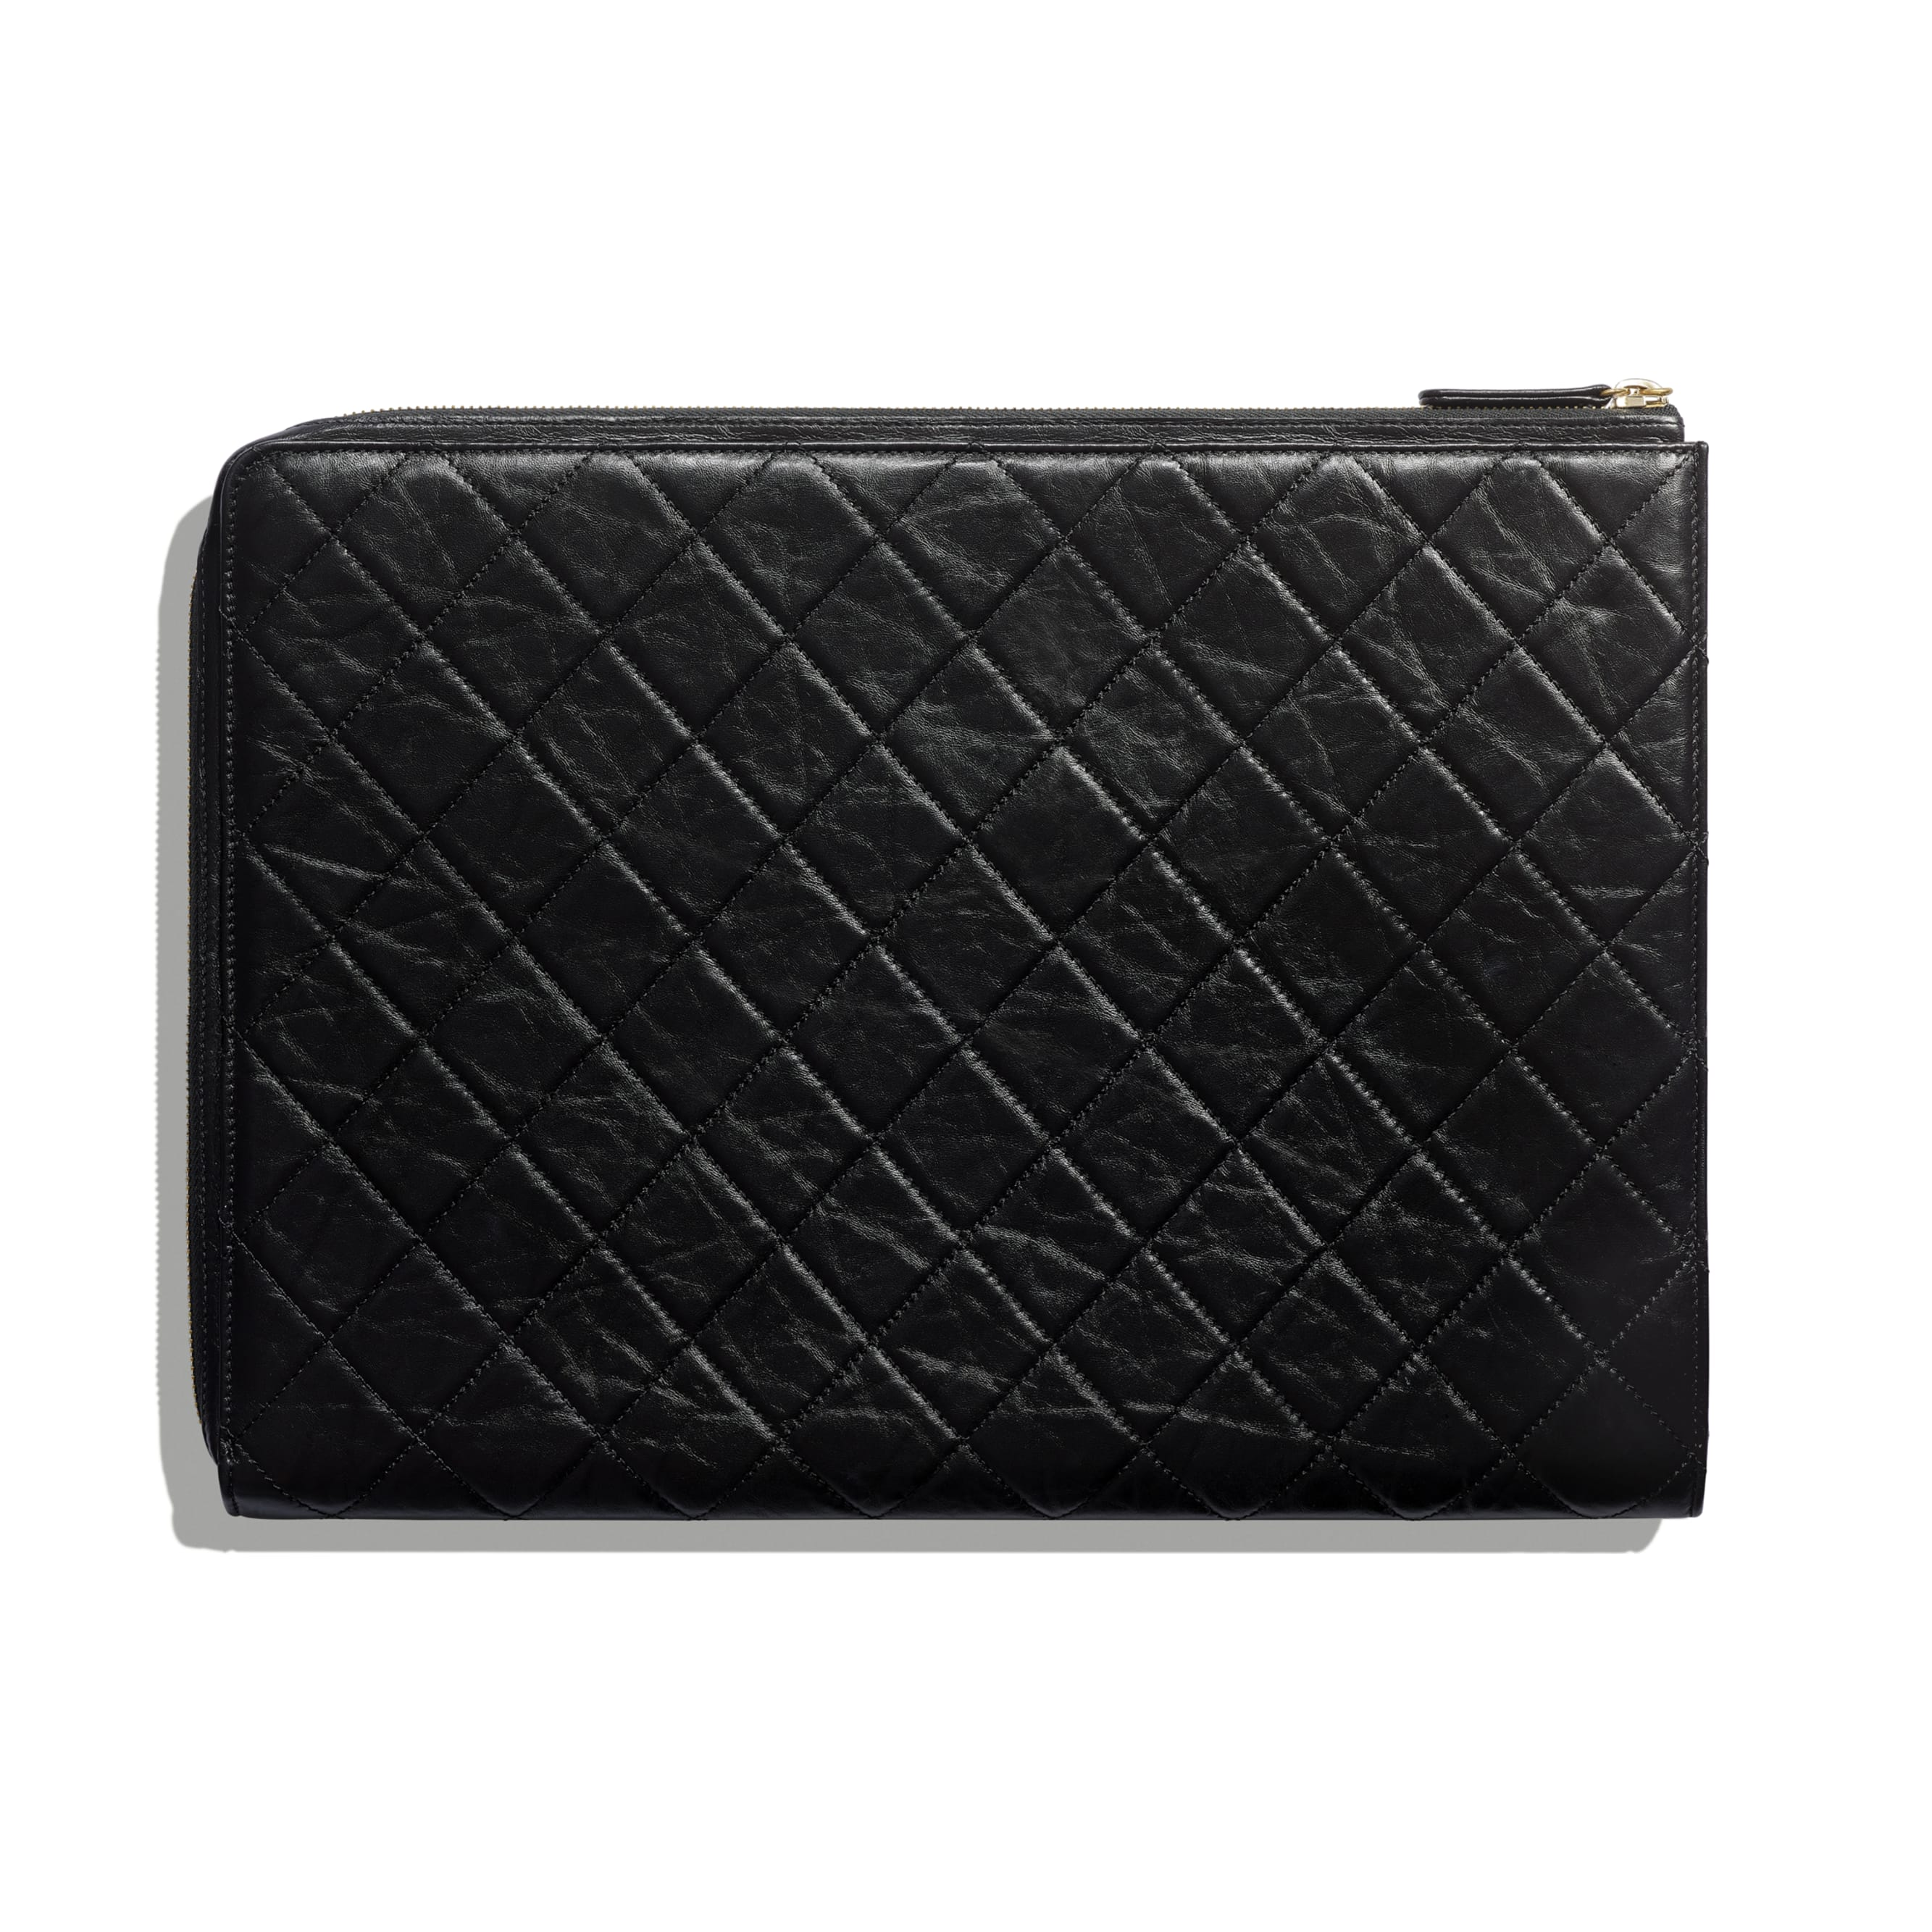 2.55 Pouch - Black - Aged Calfskin & Gold-Tone Metal - CHANEL - Alternative view - see standard sized version